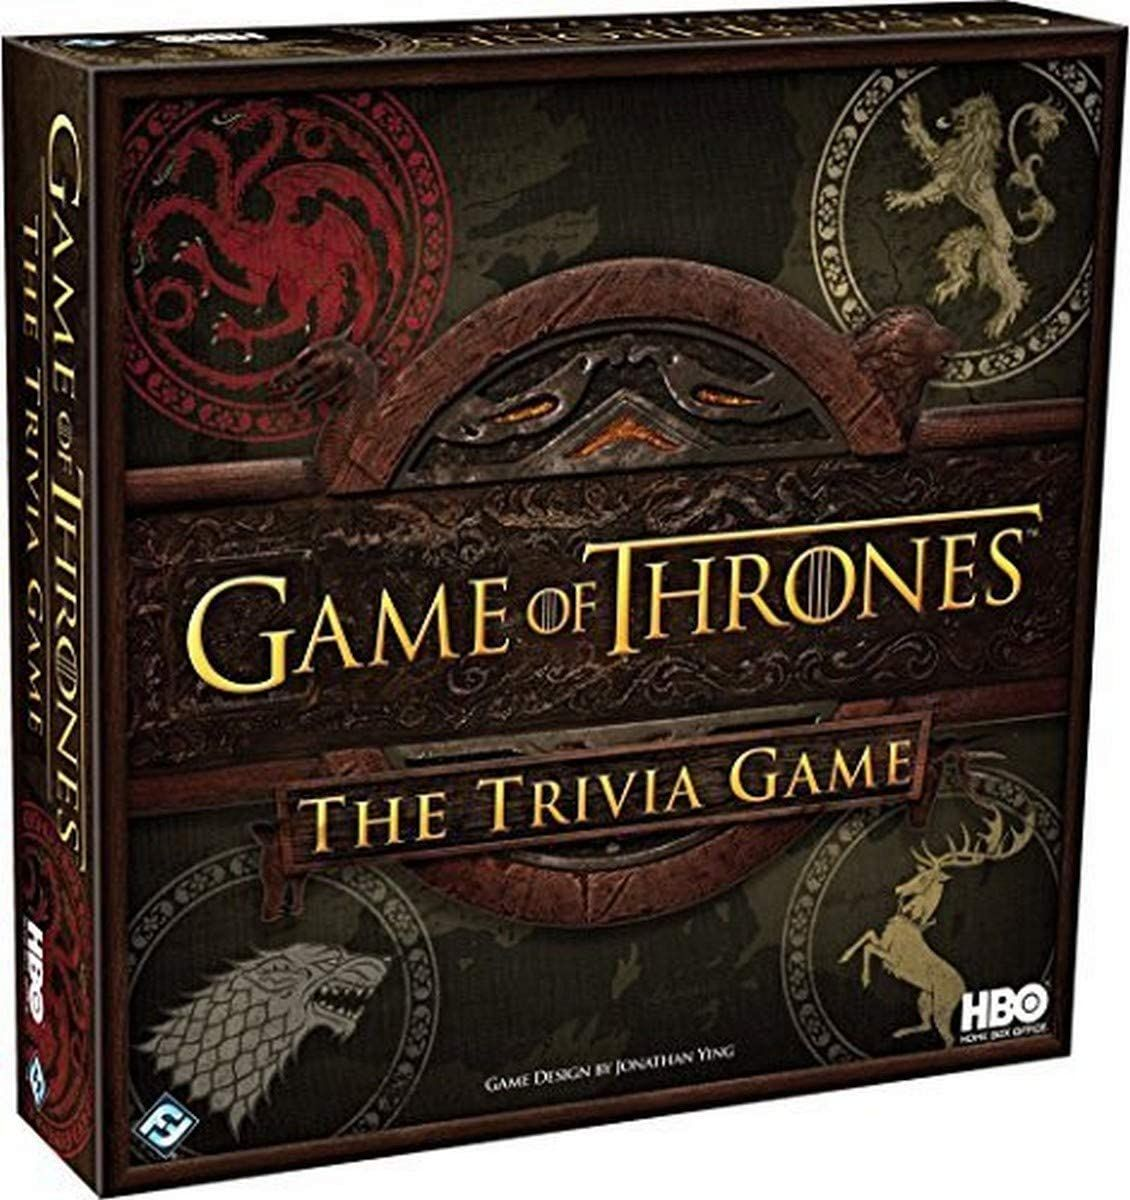 game of thrones gifts-5.jpg